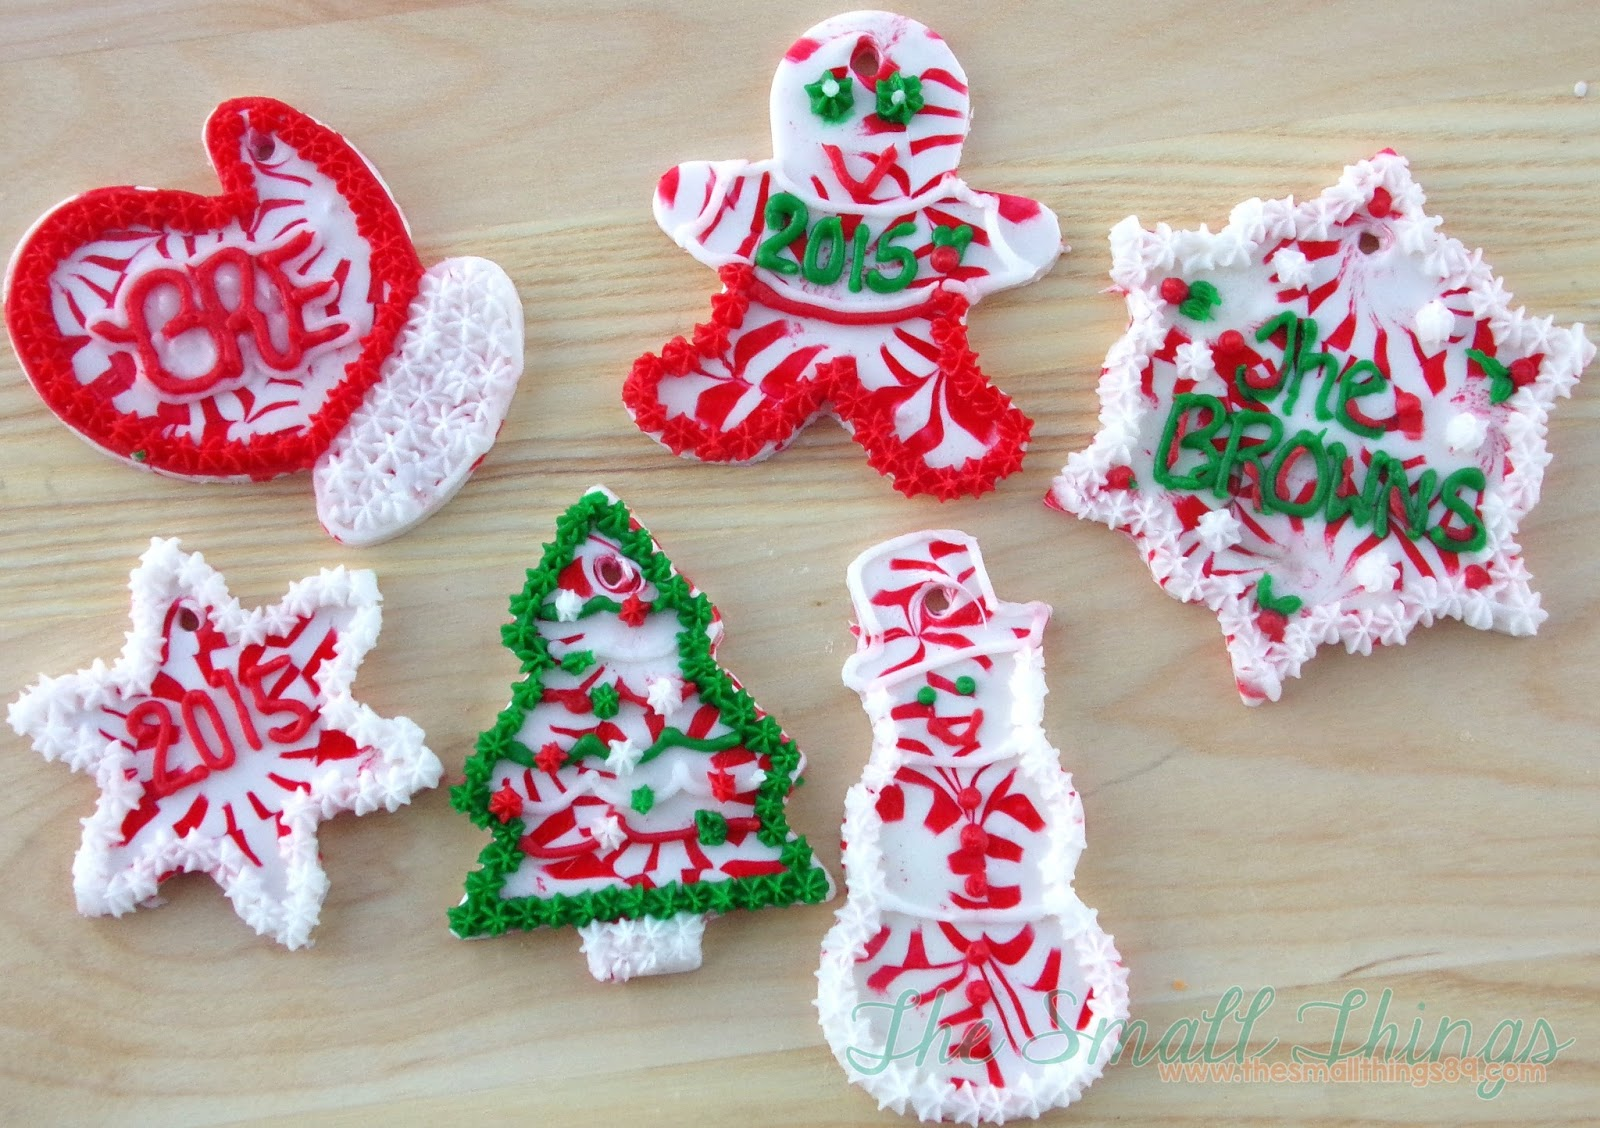 Ornaments with names on them - You Can Choose To Leave Them Plain Or Add Any Cute Piping And Names Another Idea Would Be To Make Them Edible Gift Tags Or Even Edible Place Cards On